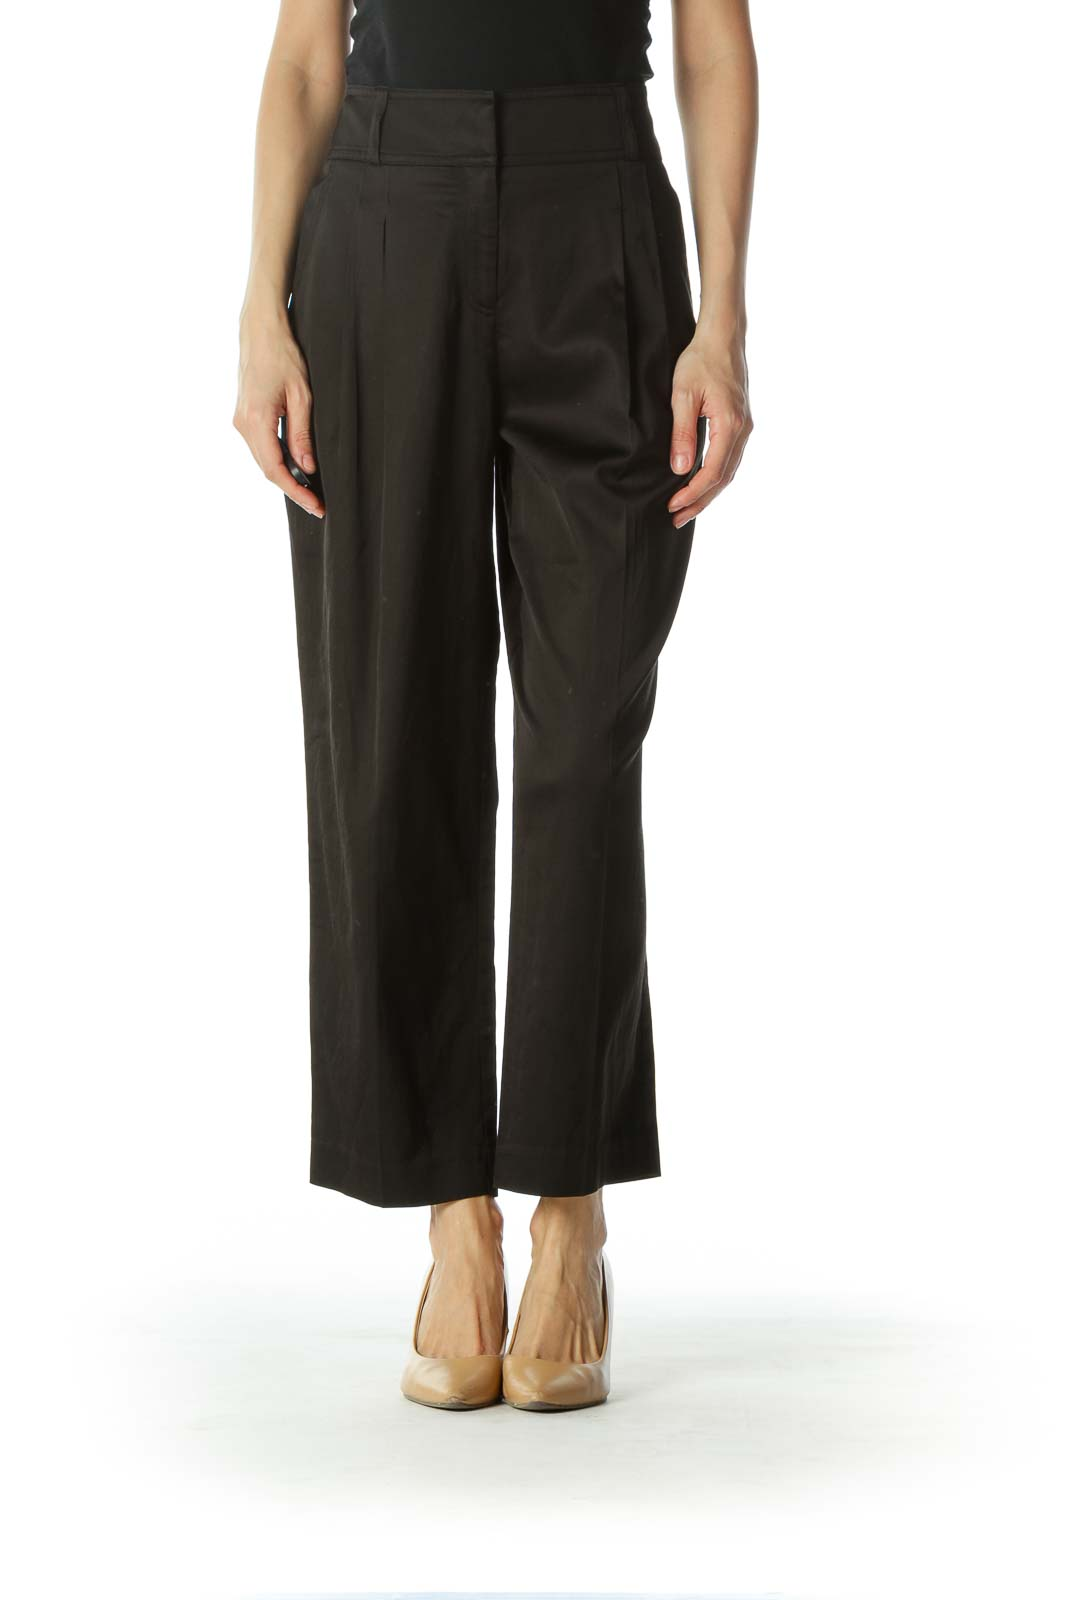 Black Pleated High-Waisted Slacks